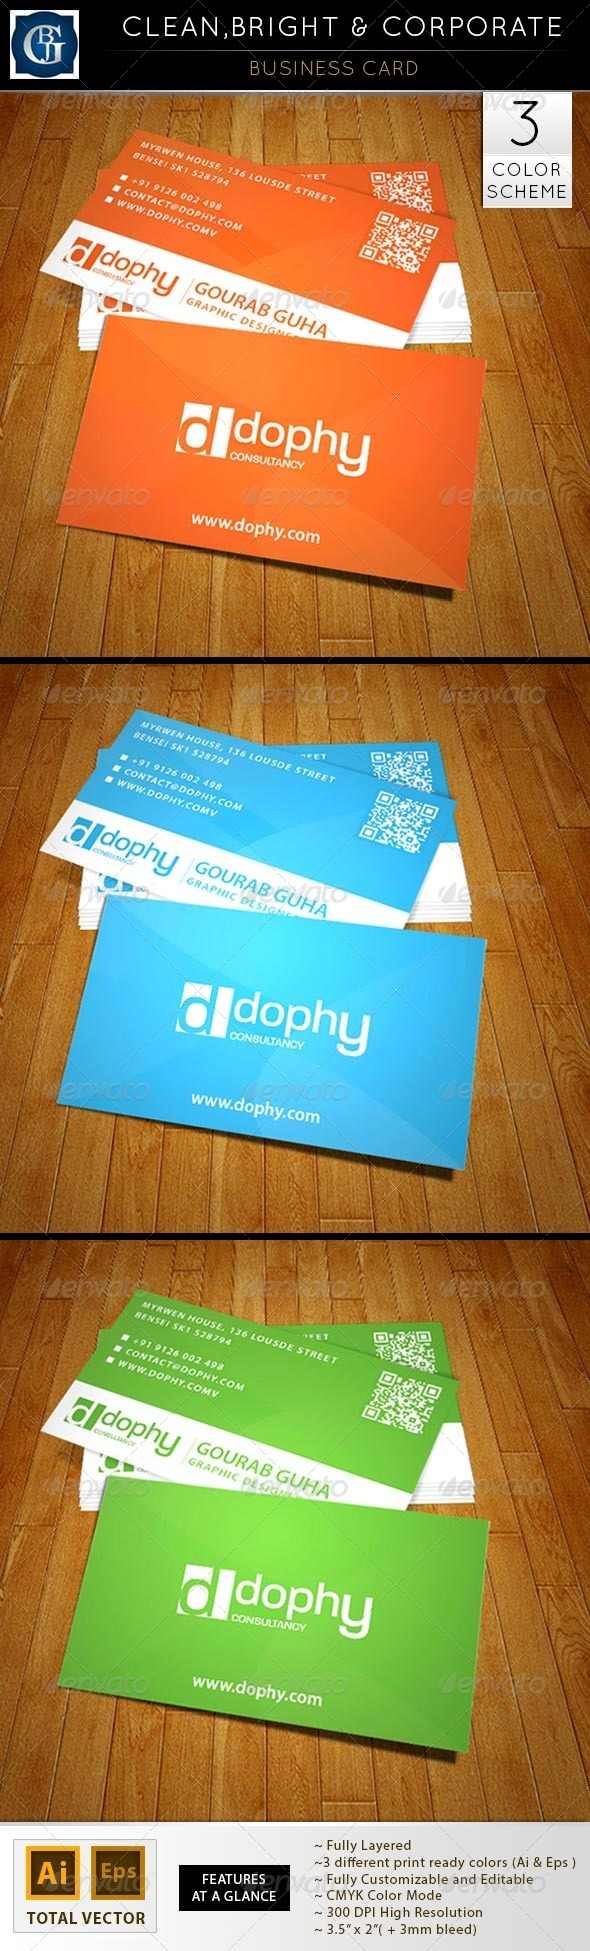 Business Card - Clean, Bright & Corporate - Corporate Business Cards